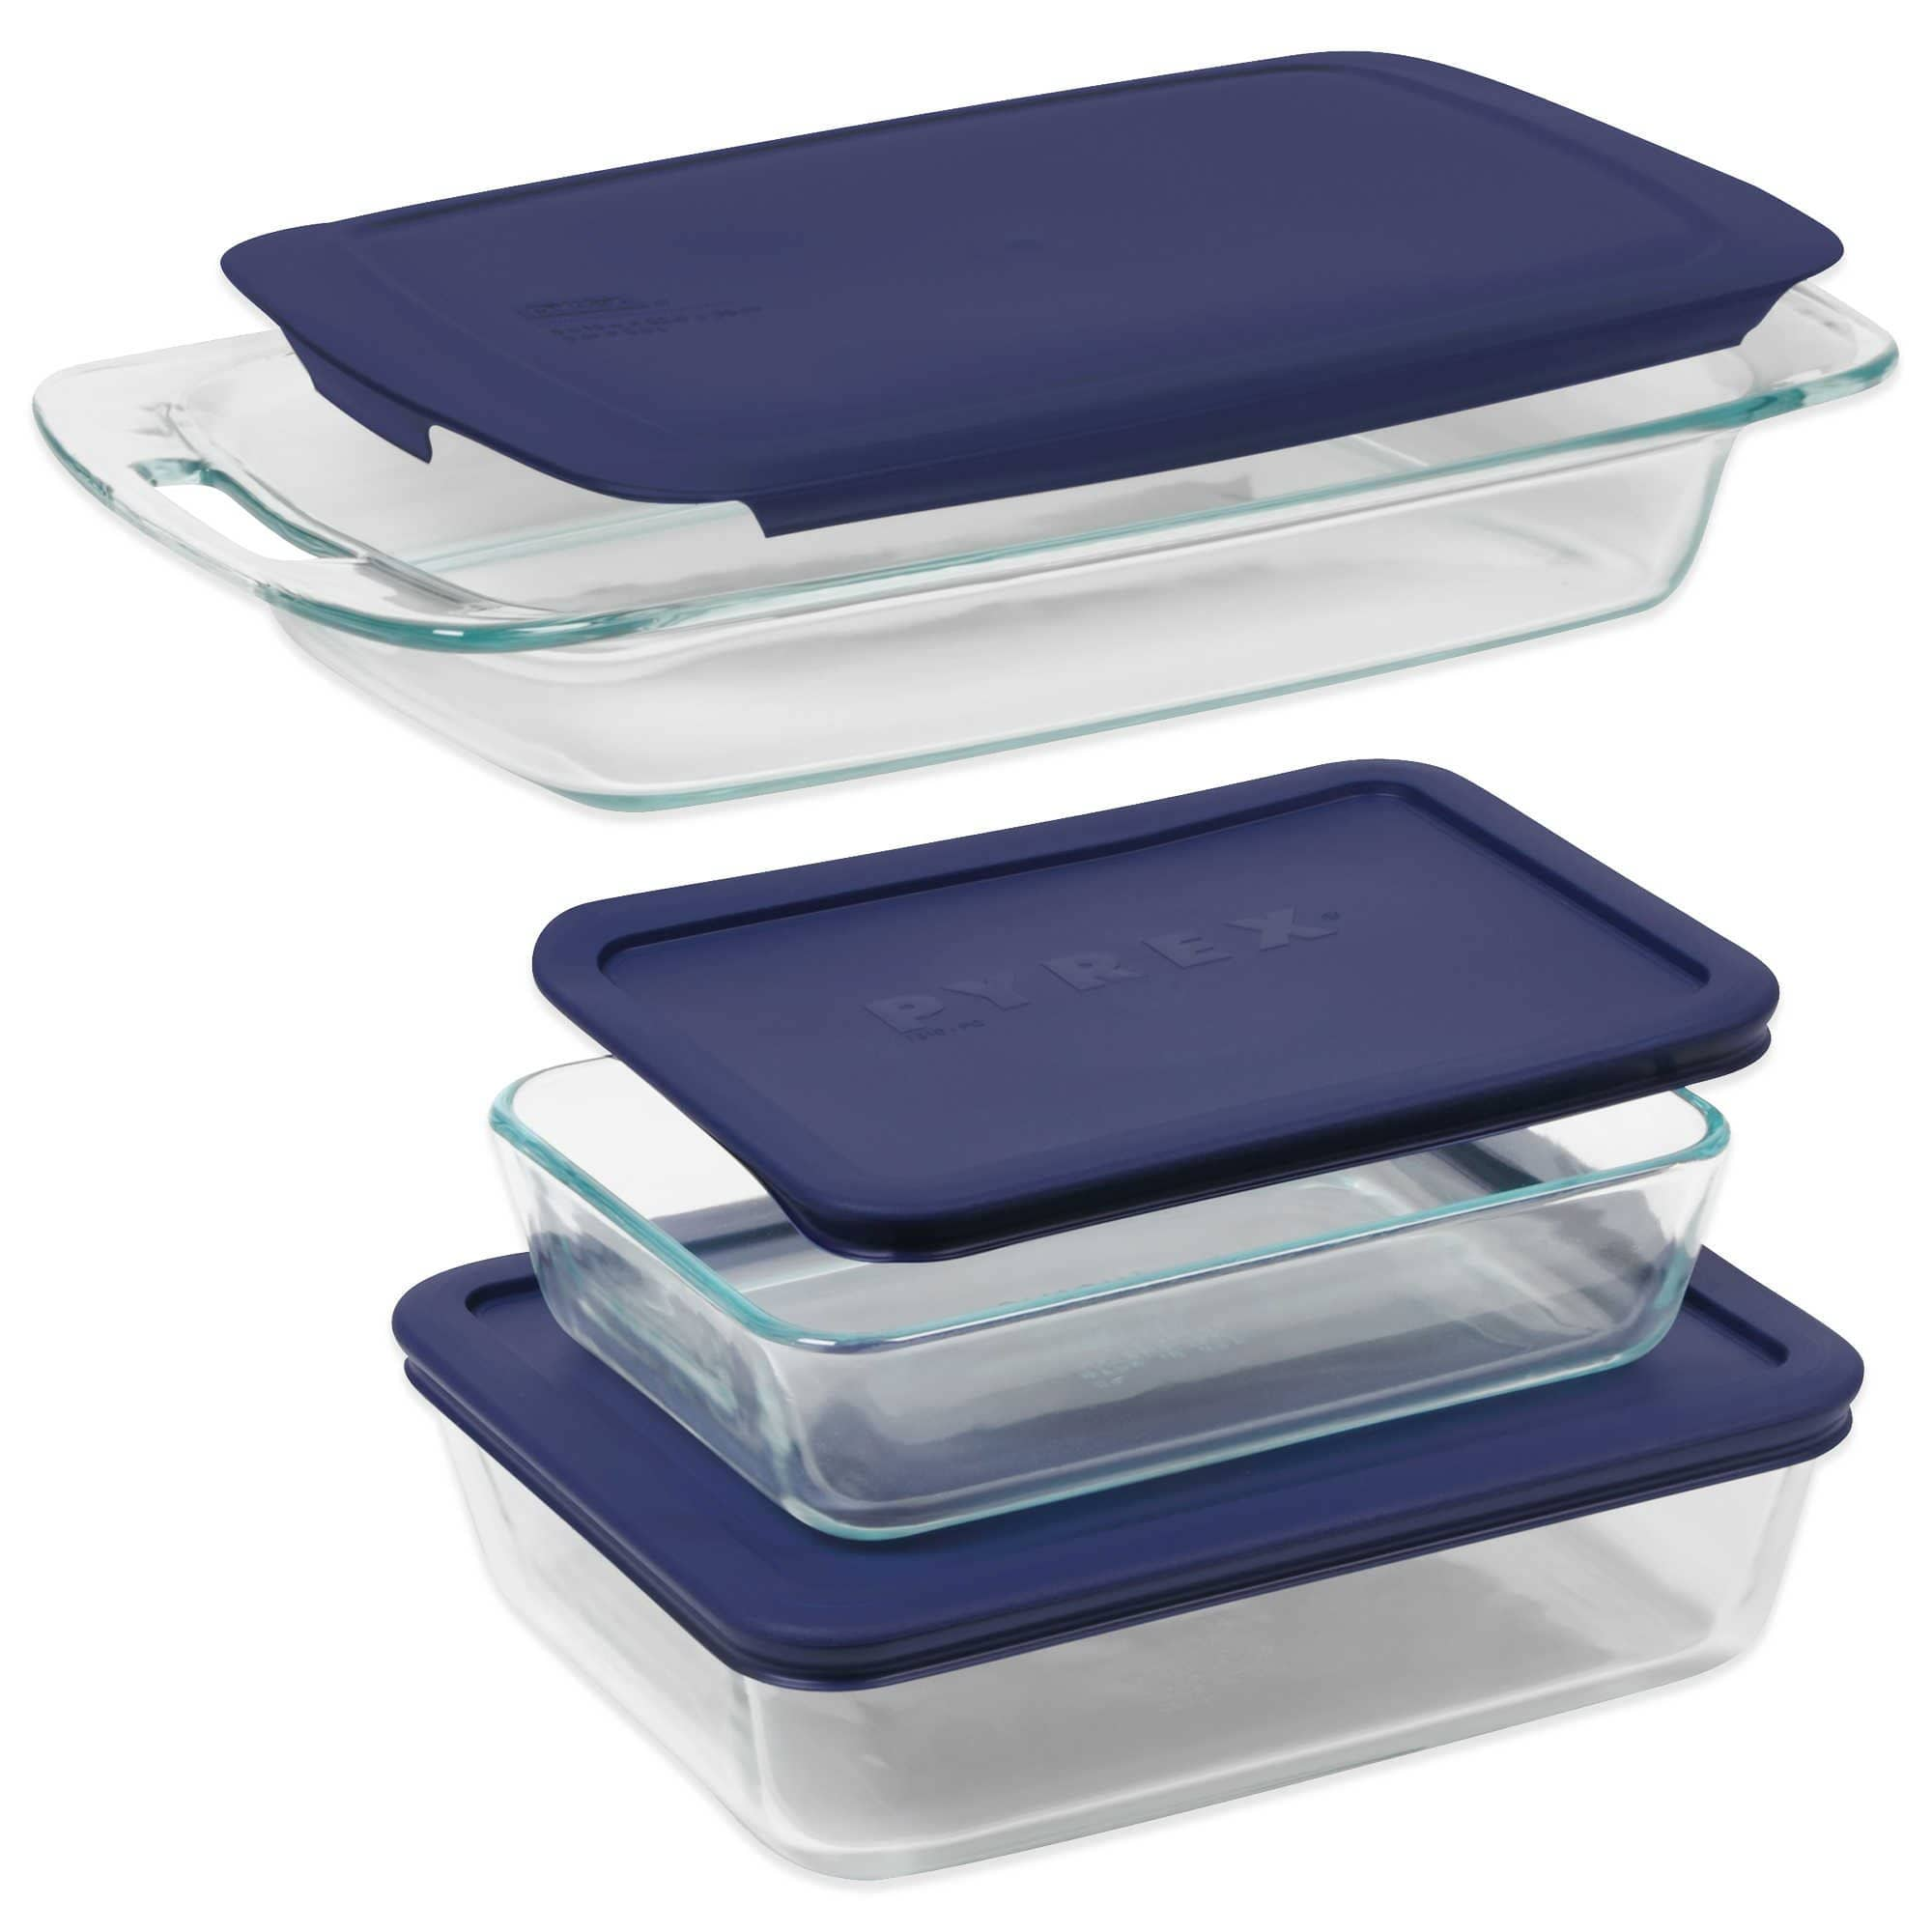 7 Extra-Large Food Storage Containers for Make-Ahead Meals: gallery image 3